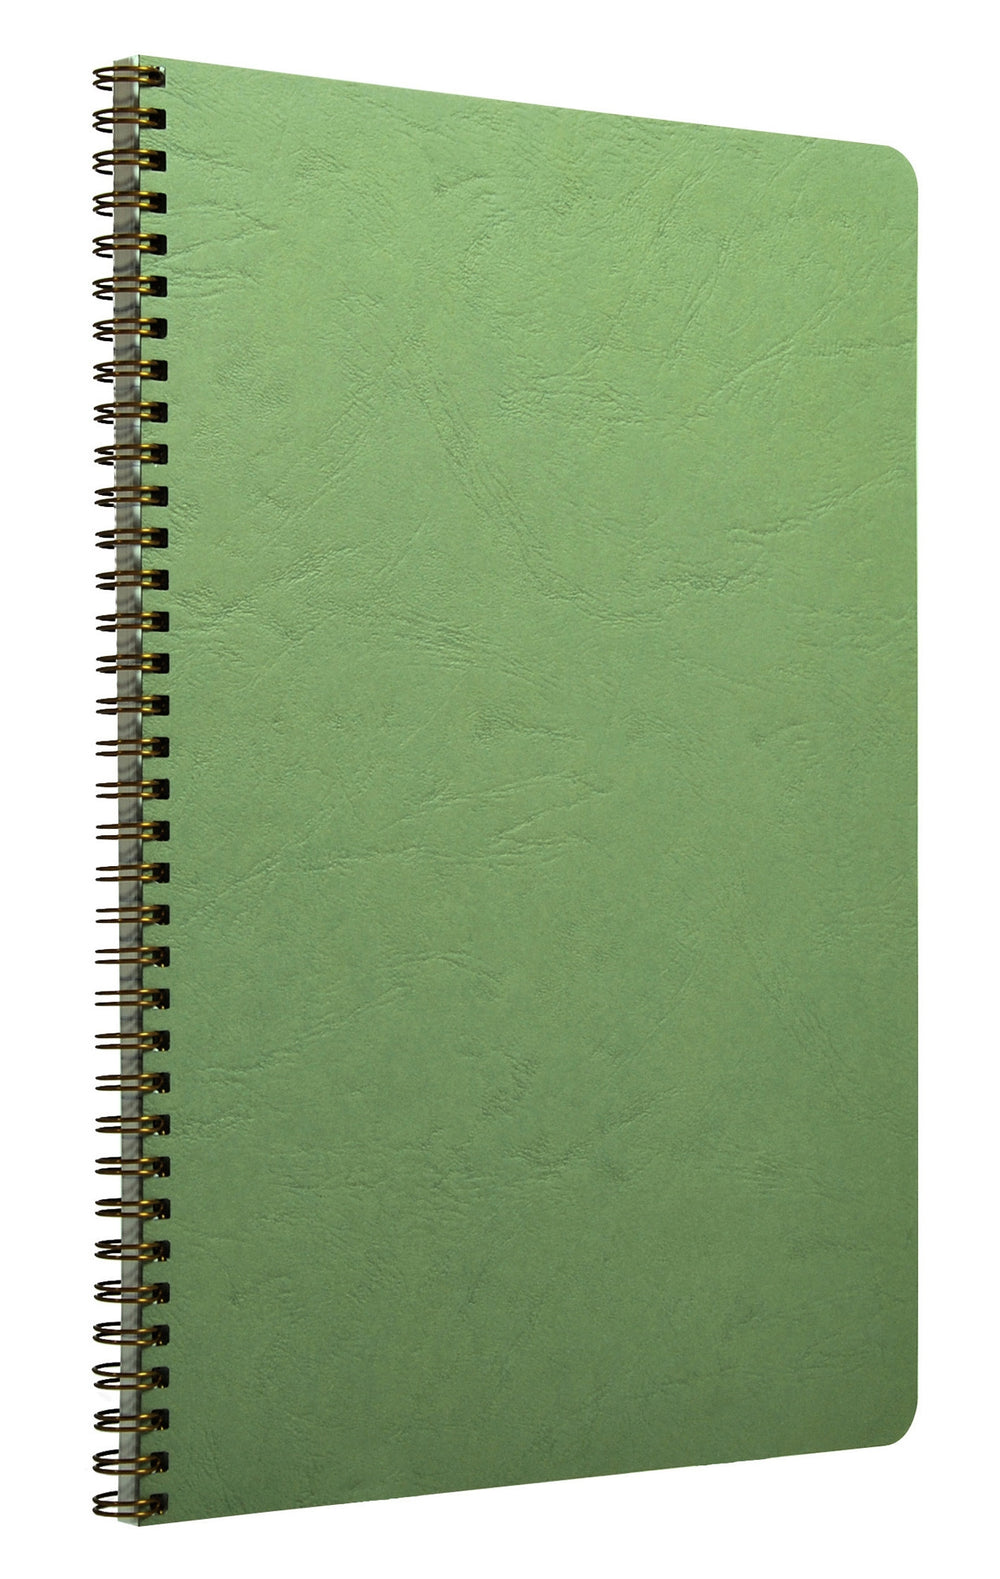 Clairefontaine Basics A4 Side Wirebound Notebook- Green, Lined